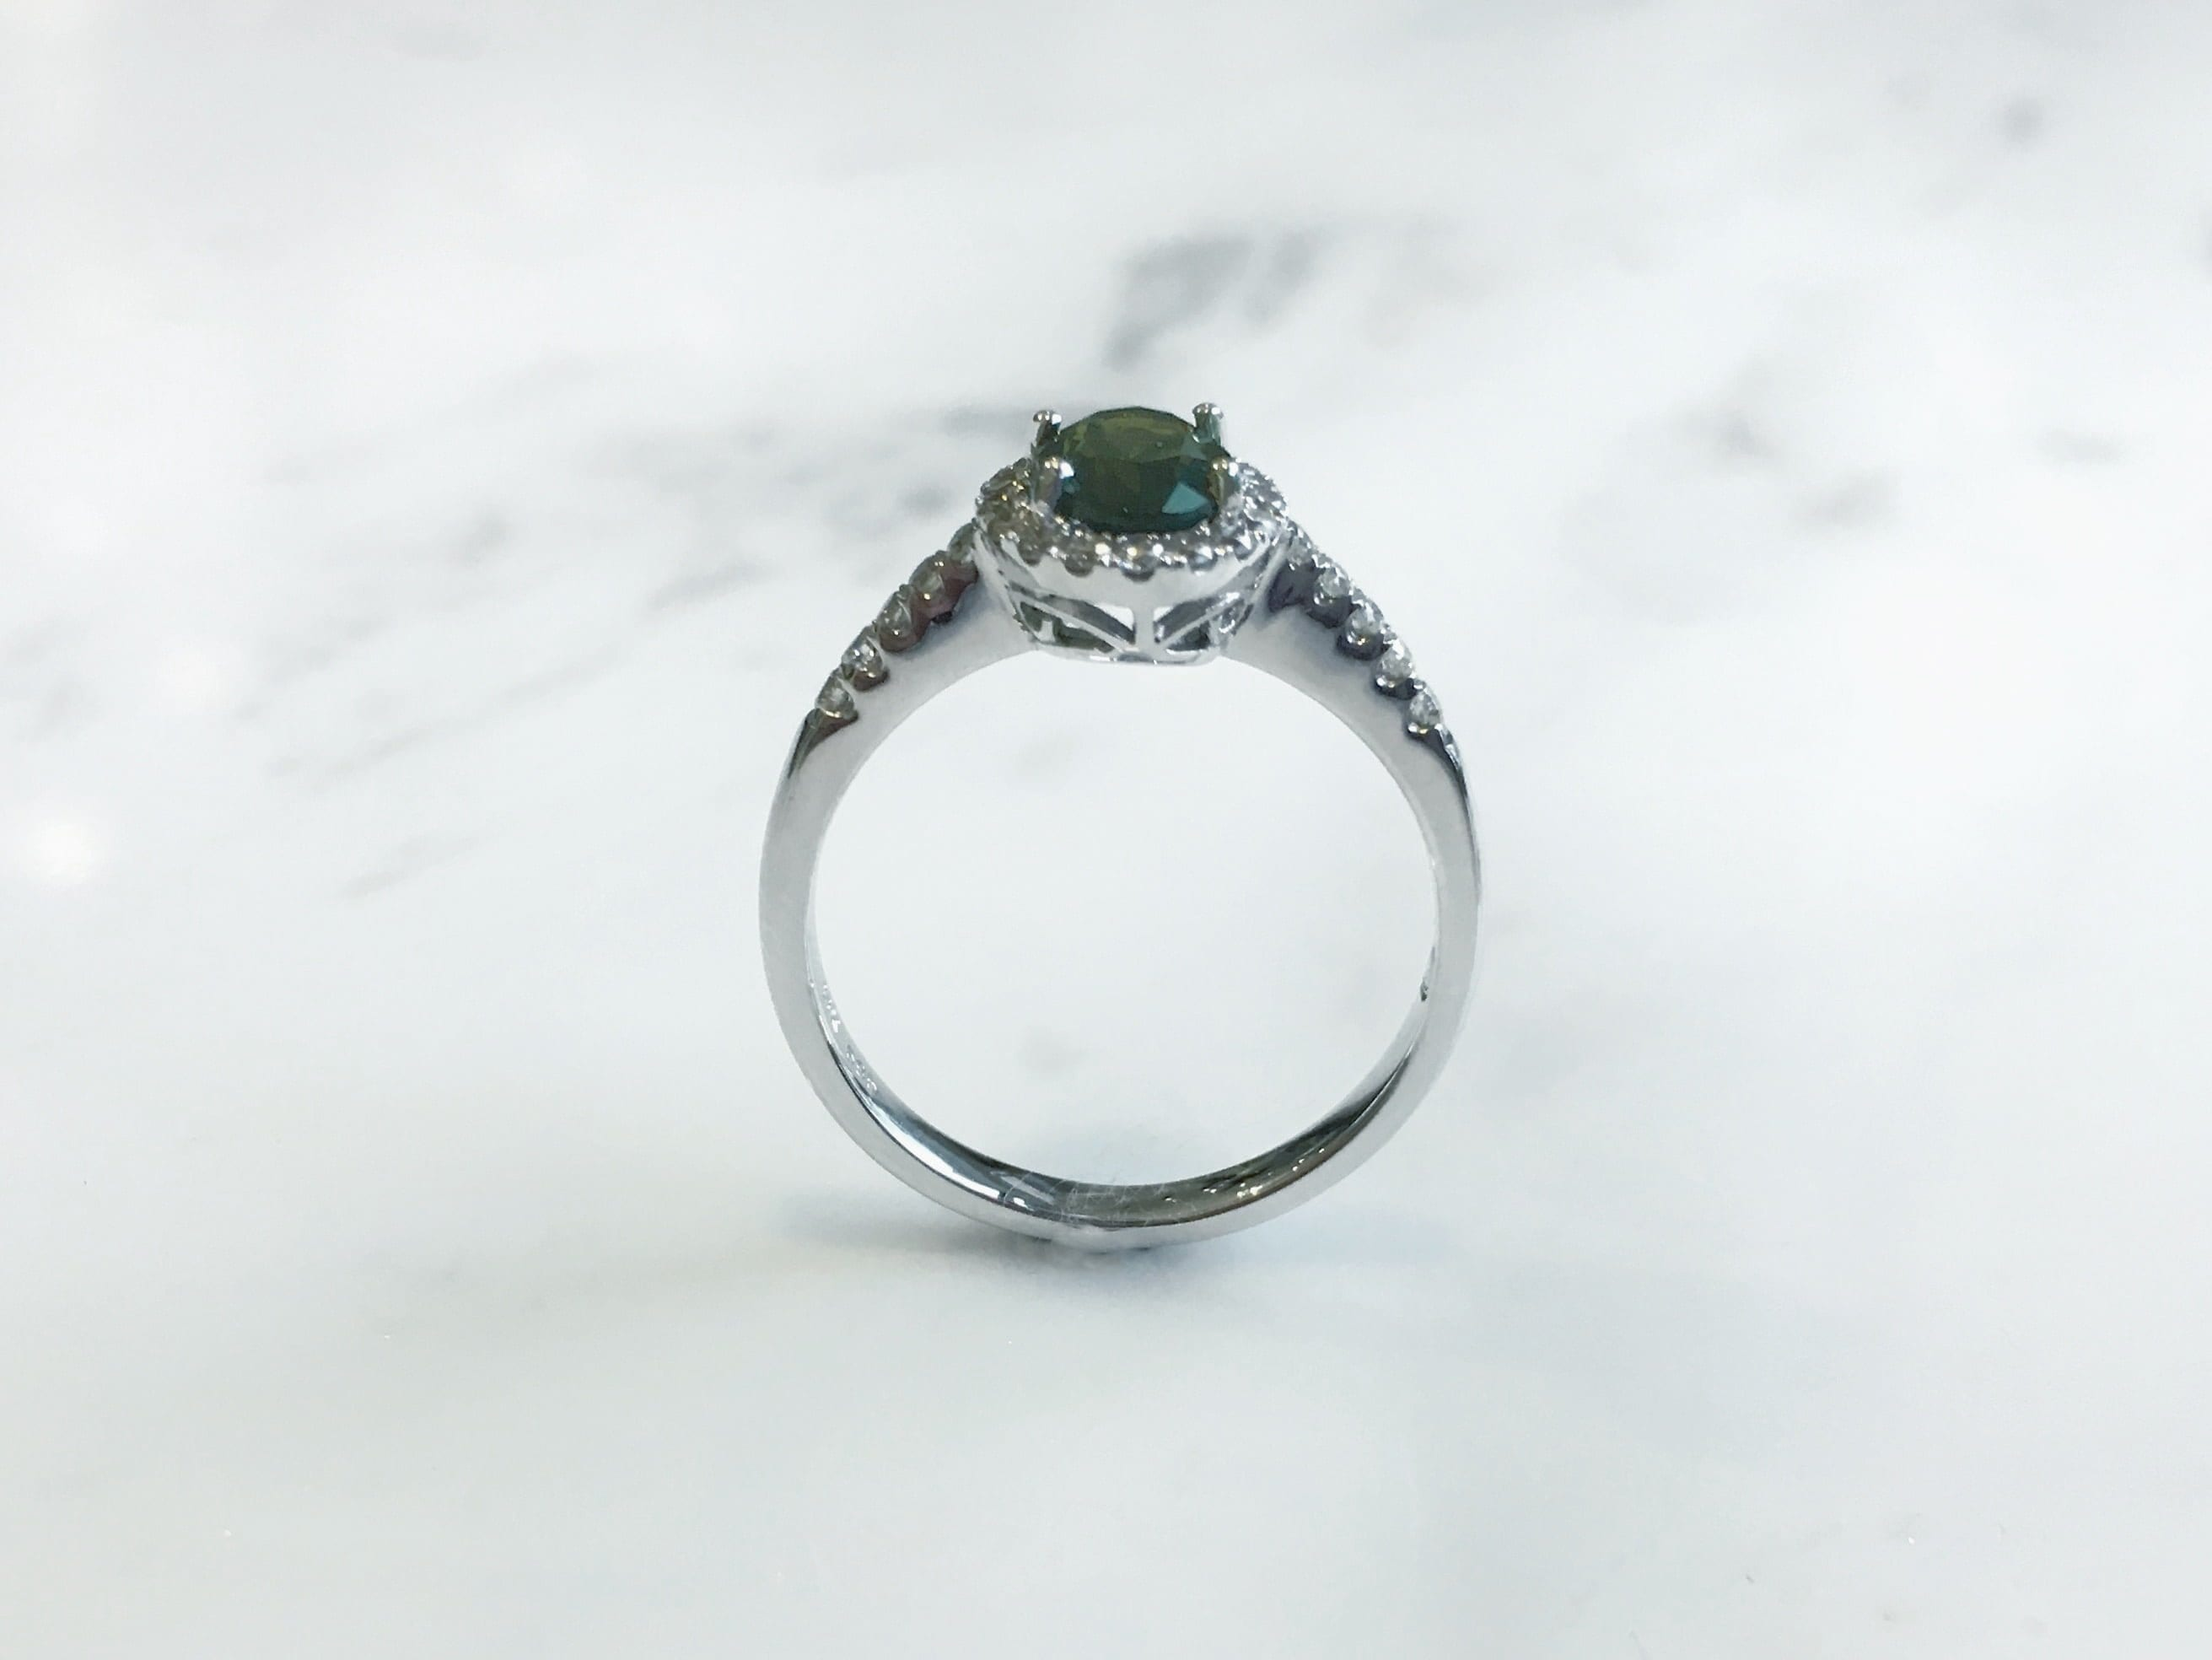 ksvhs emerald rings antique bad beautiful ring etsy tourmaline jewellery watermelon luck tiffany engagement green